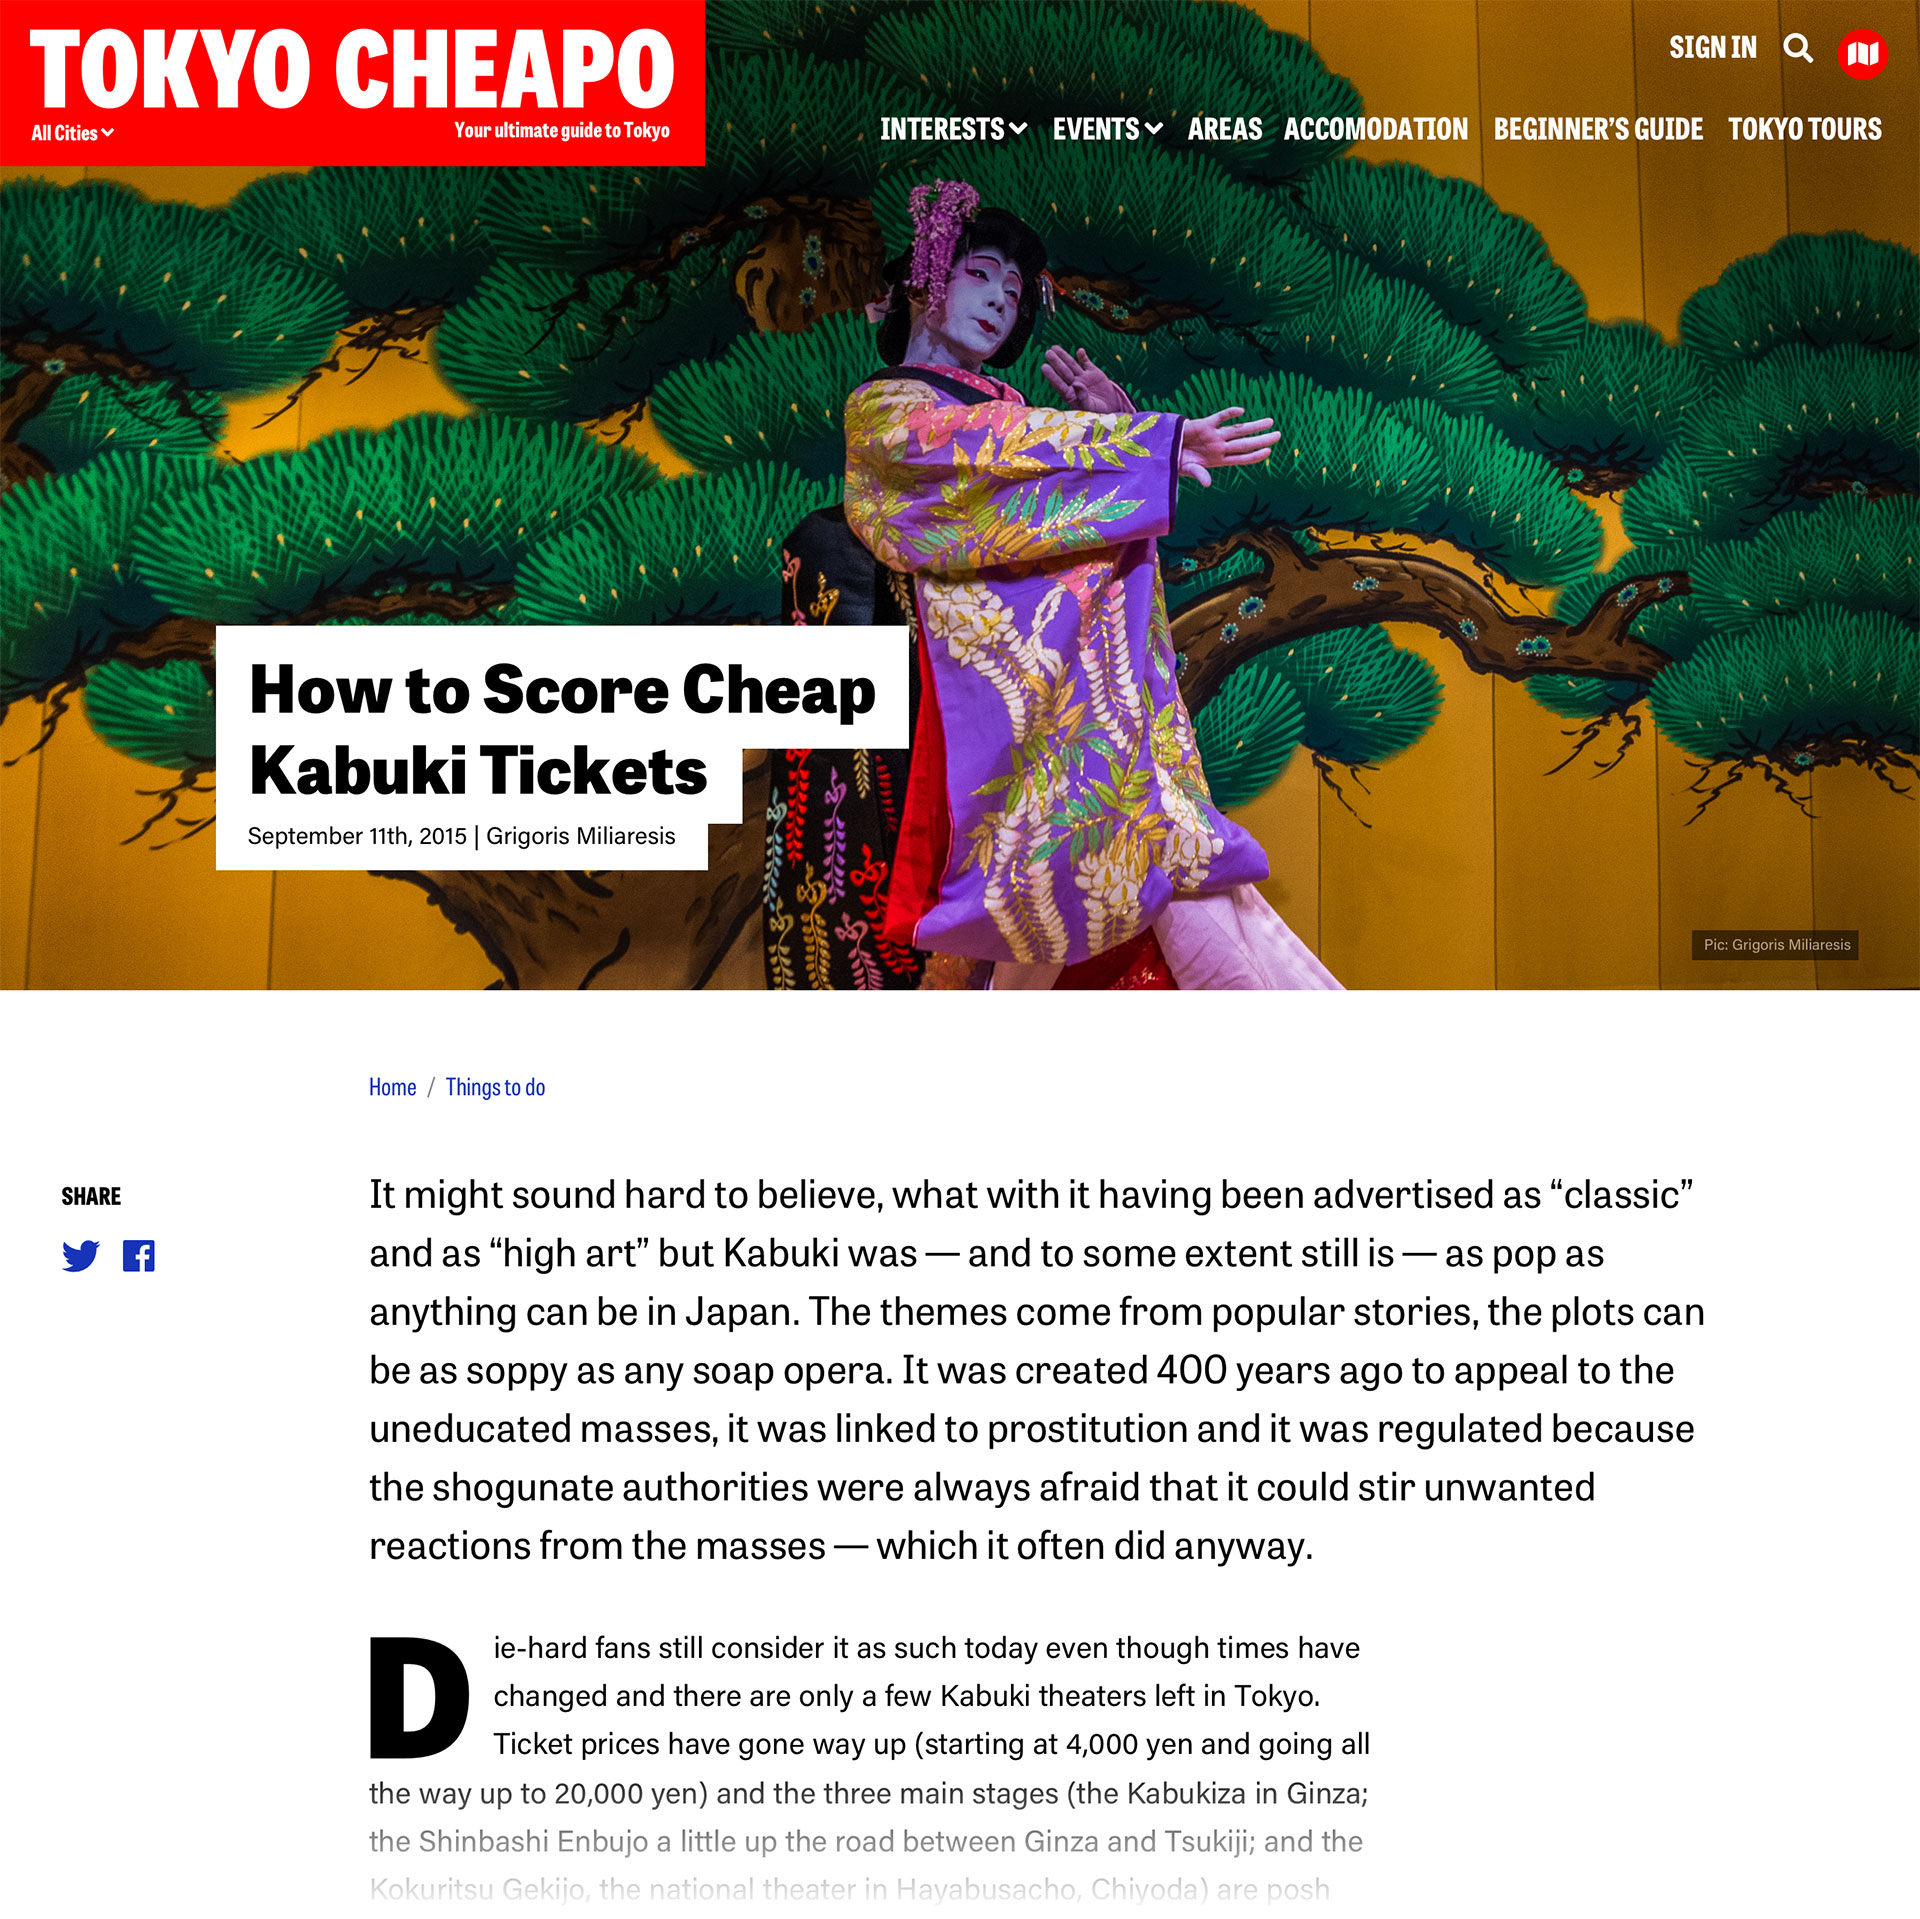 Tokyo Cheapo - Responsive UI & UX web design templates - Article - Desktop, Tablet and Mobile